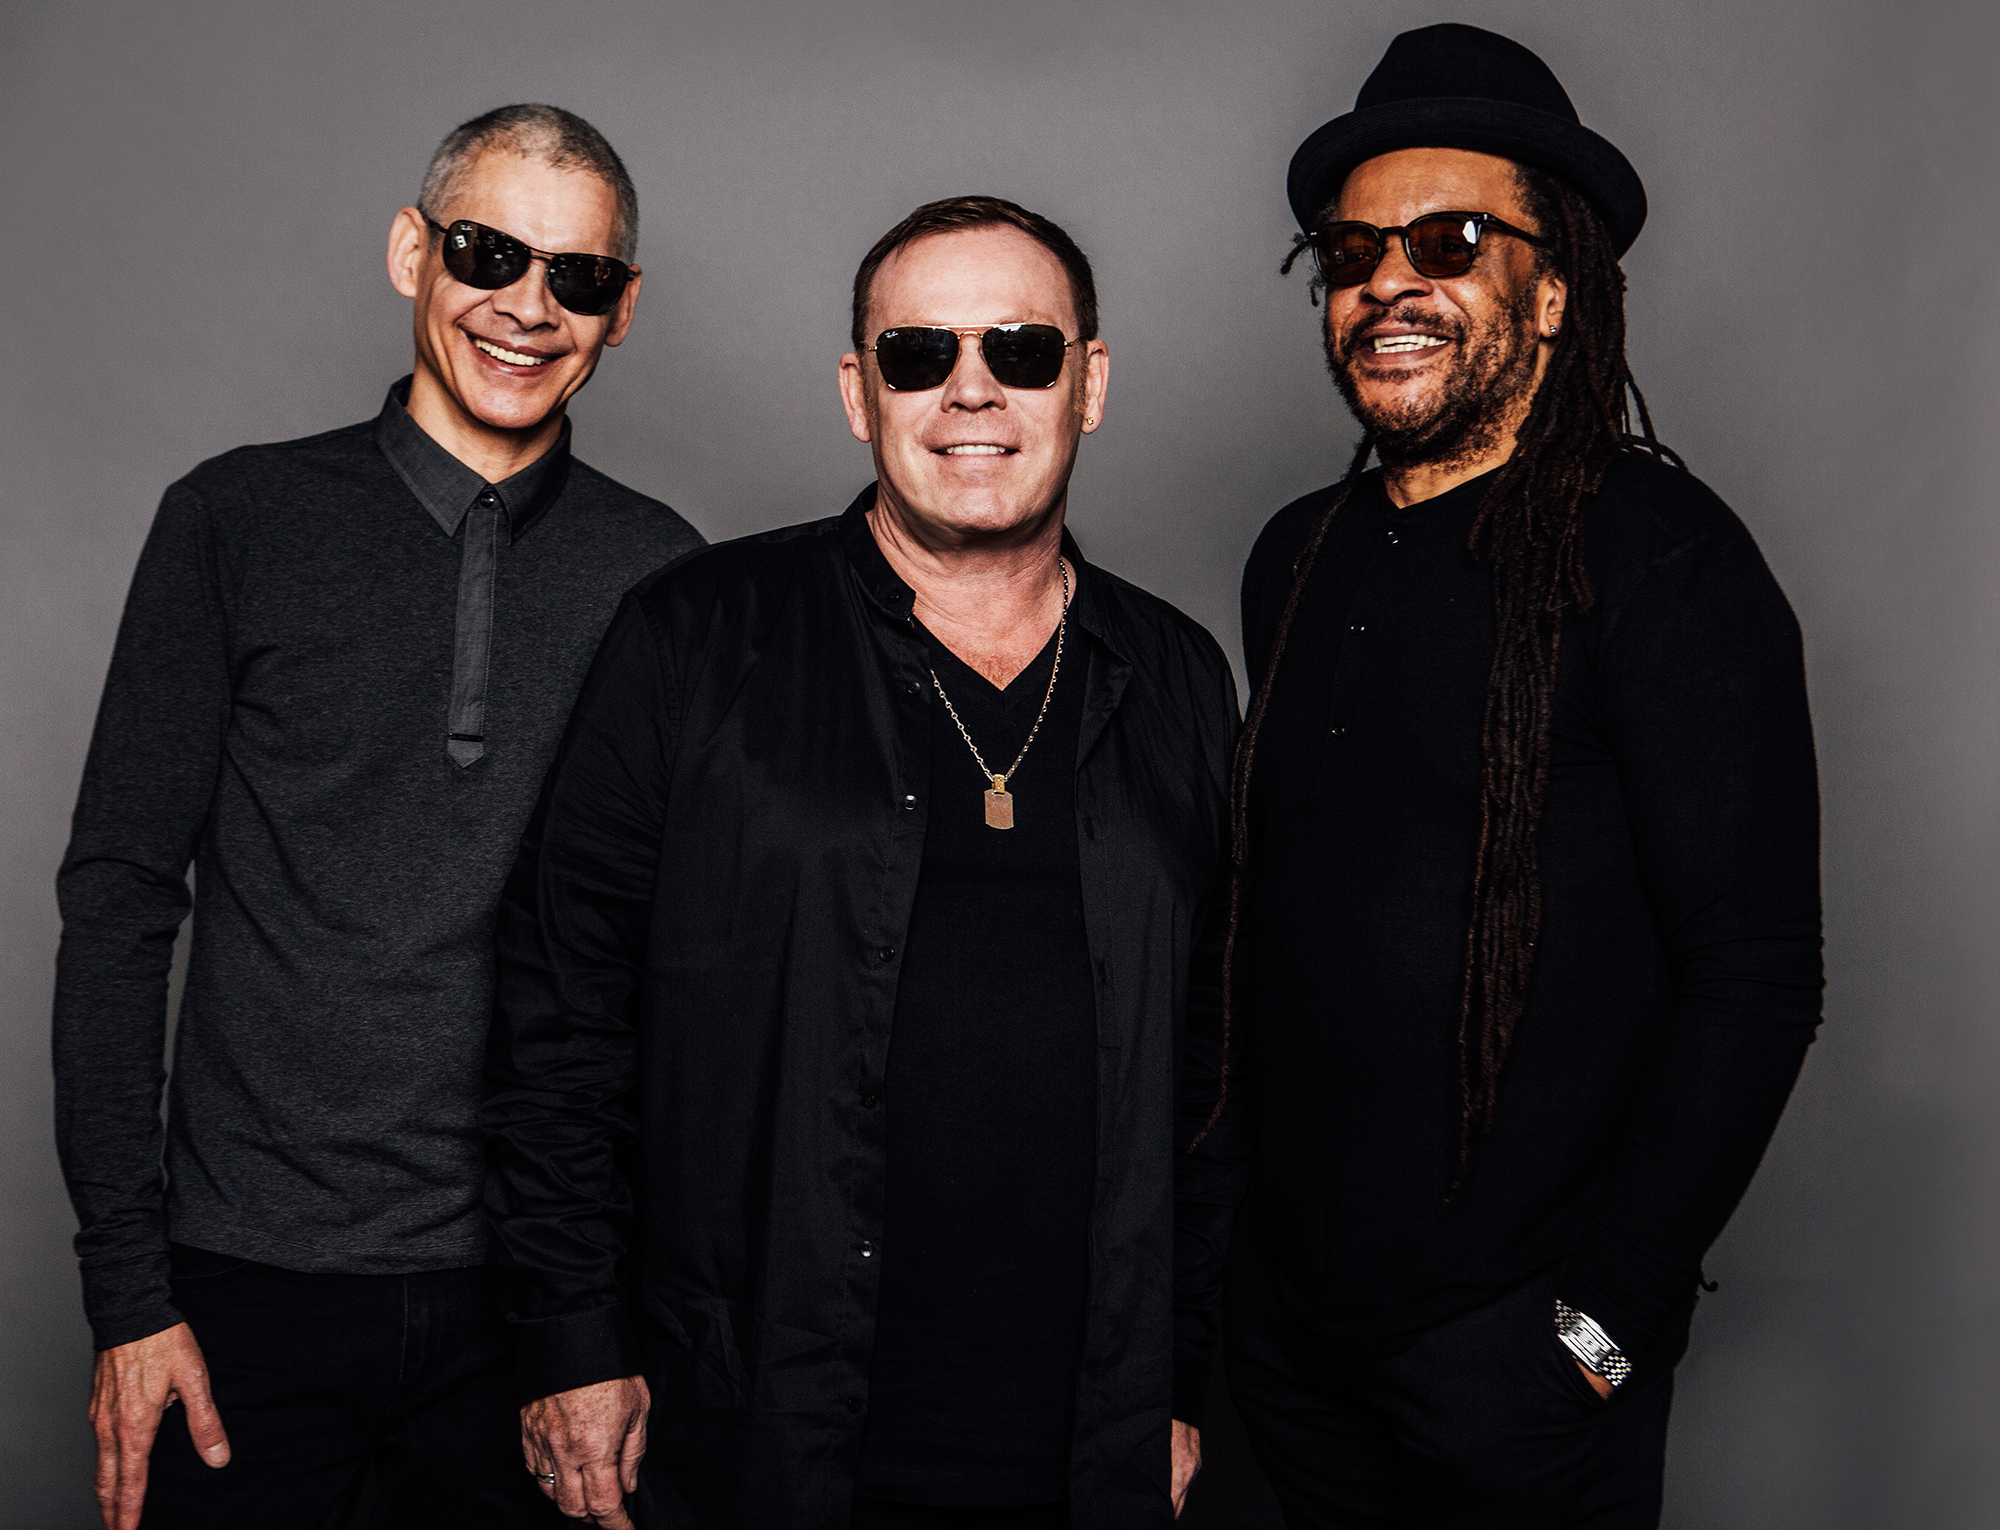 UB40 to perform Labour of Love I & II Tour